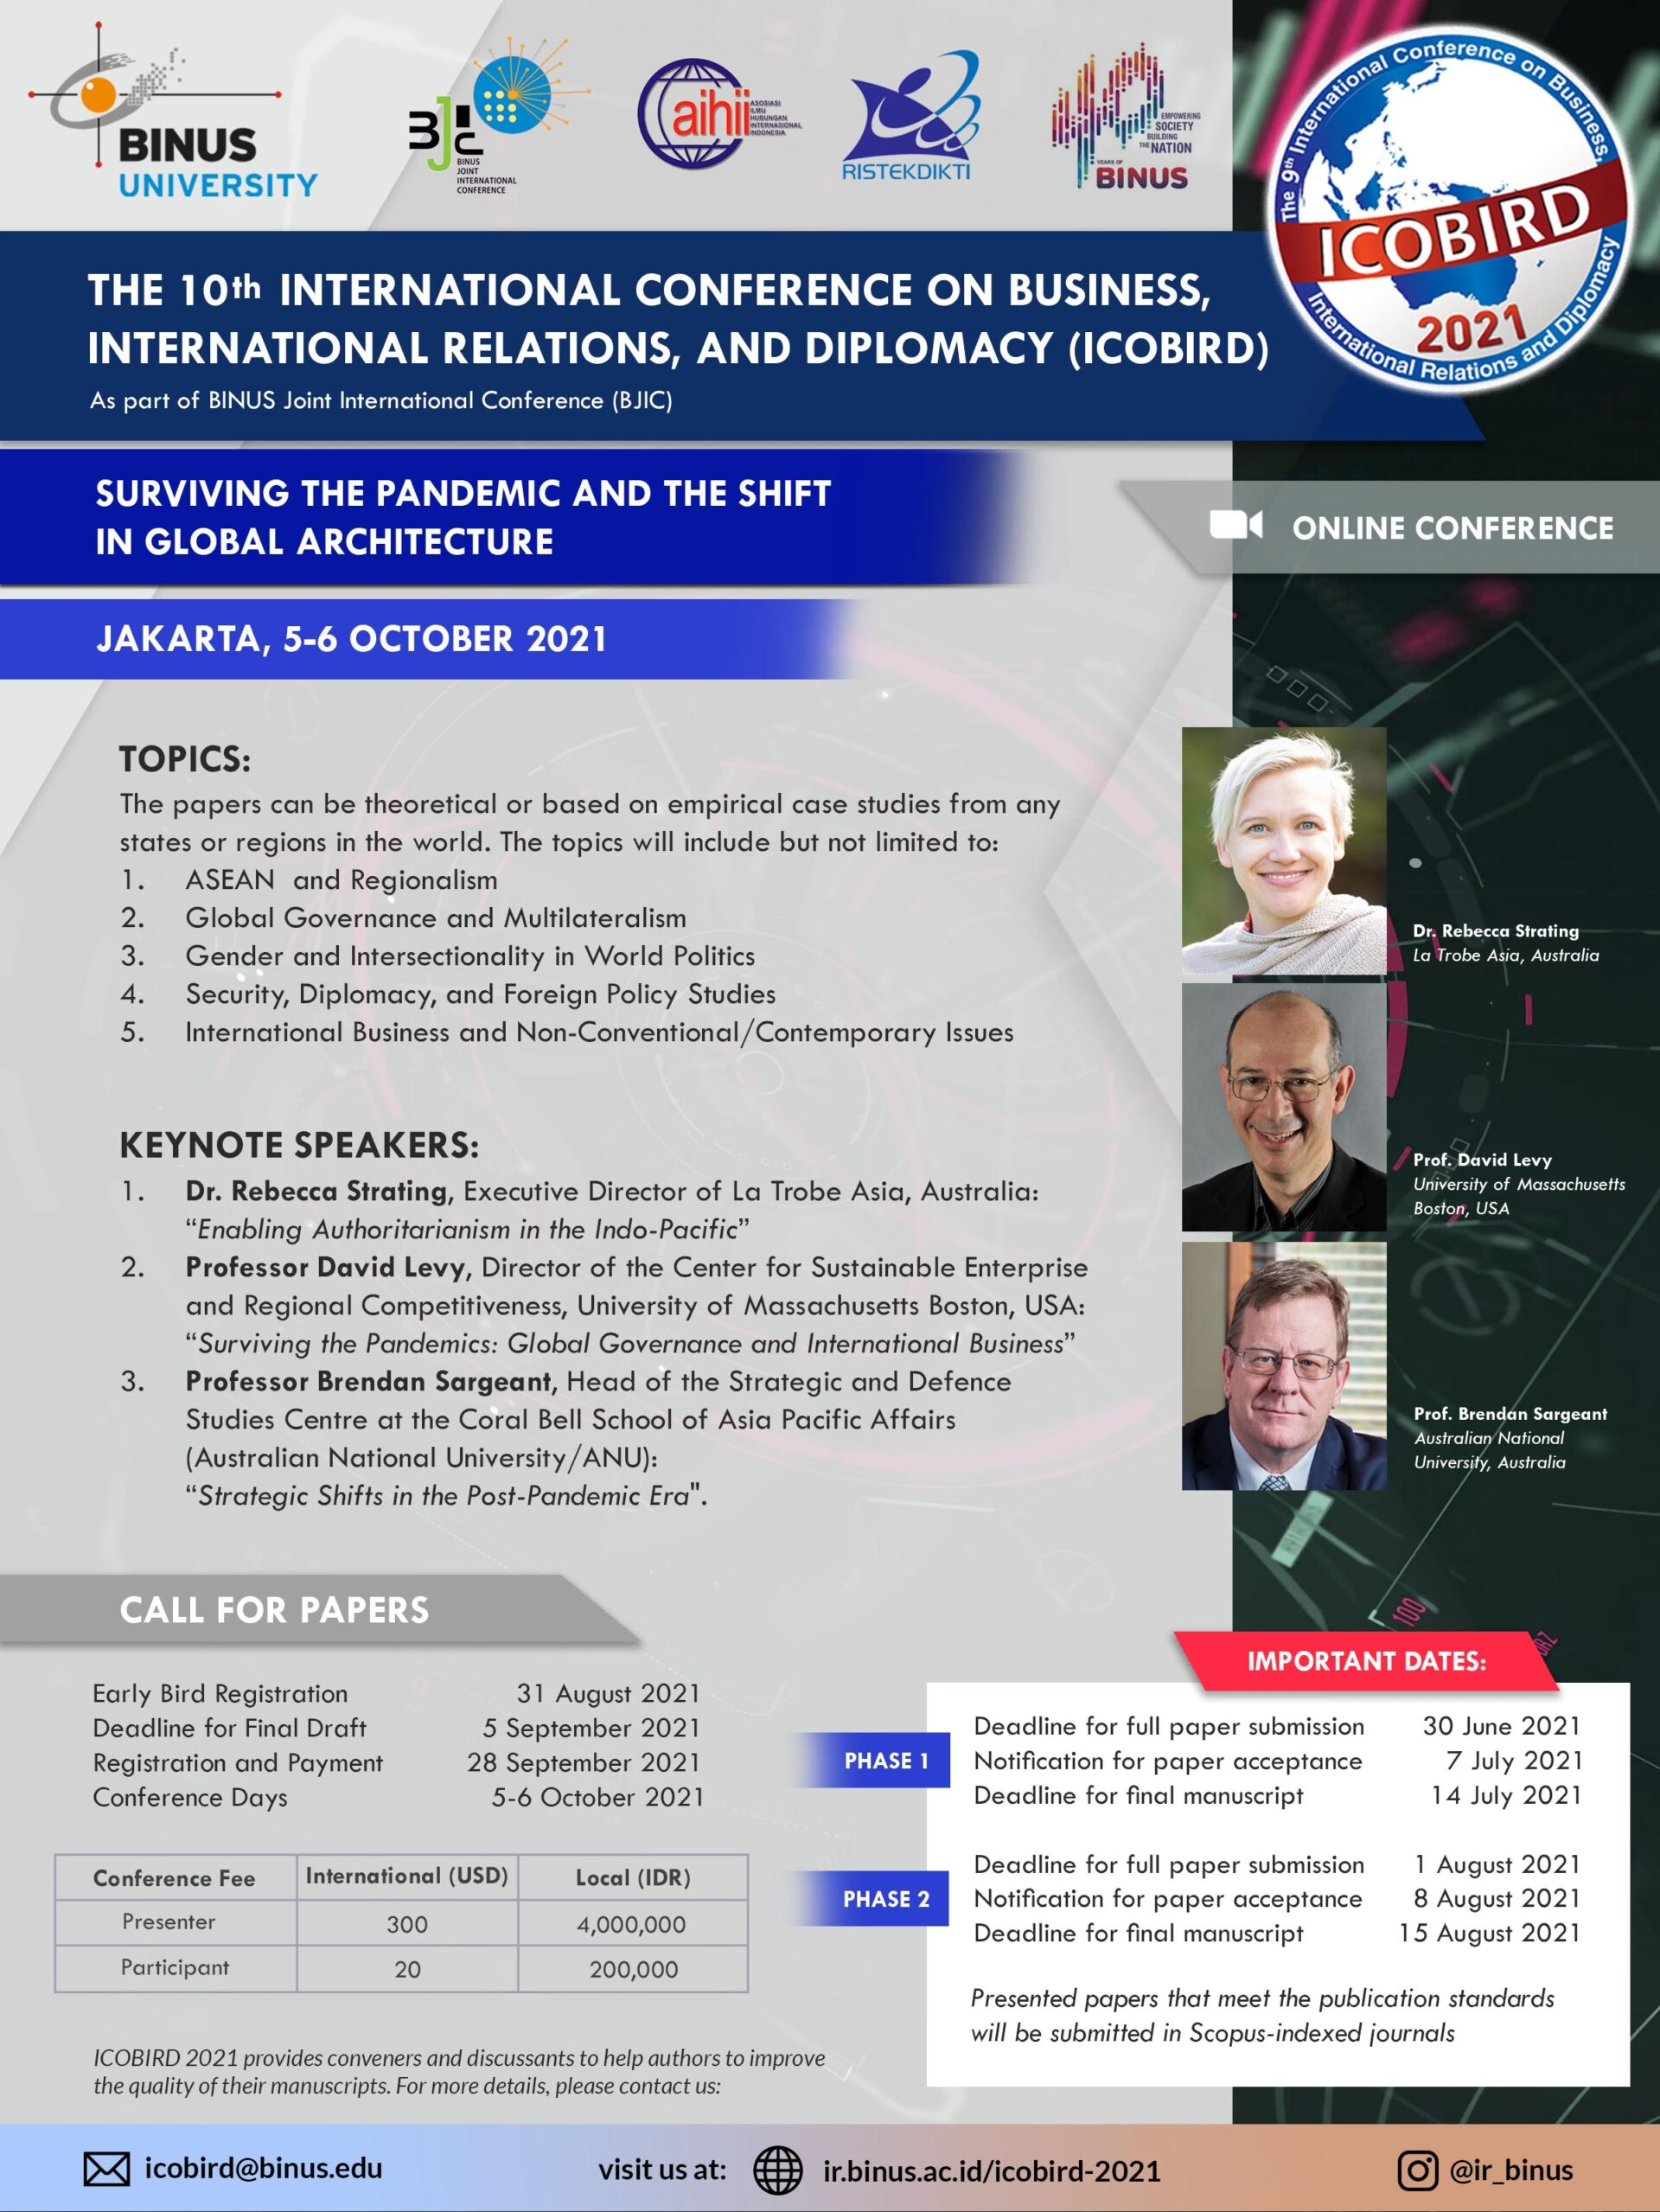 Conference Homepage Image